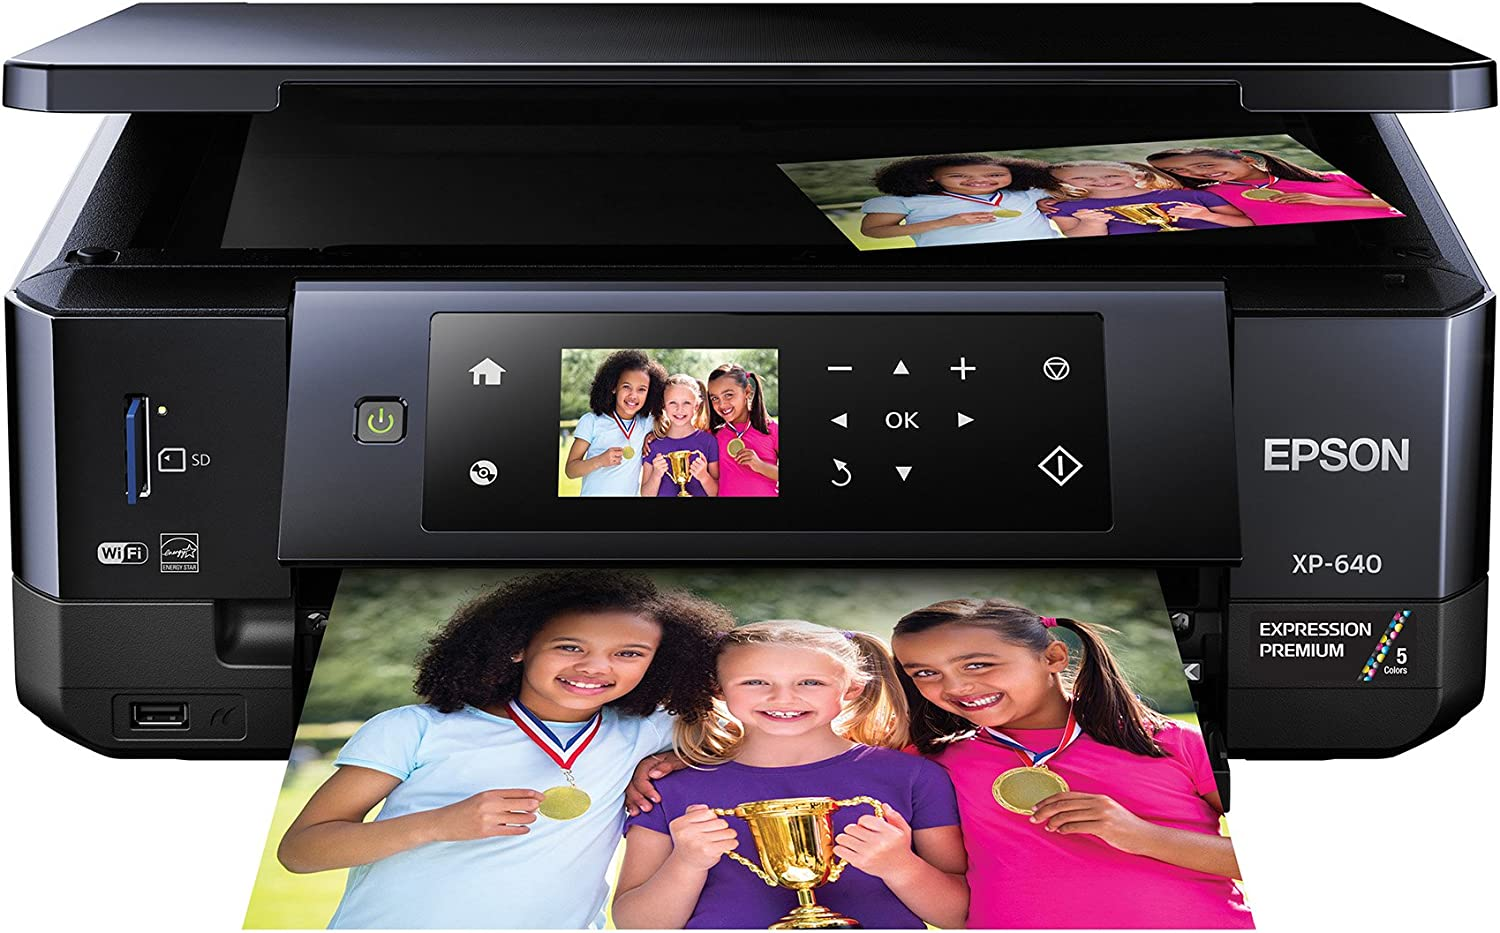 Epson XP-640 Wireless Color Photo Printer 2.7